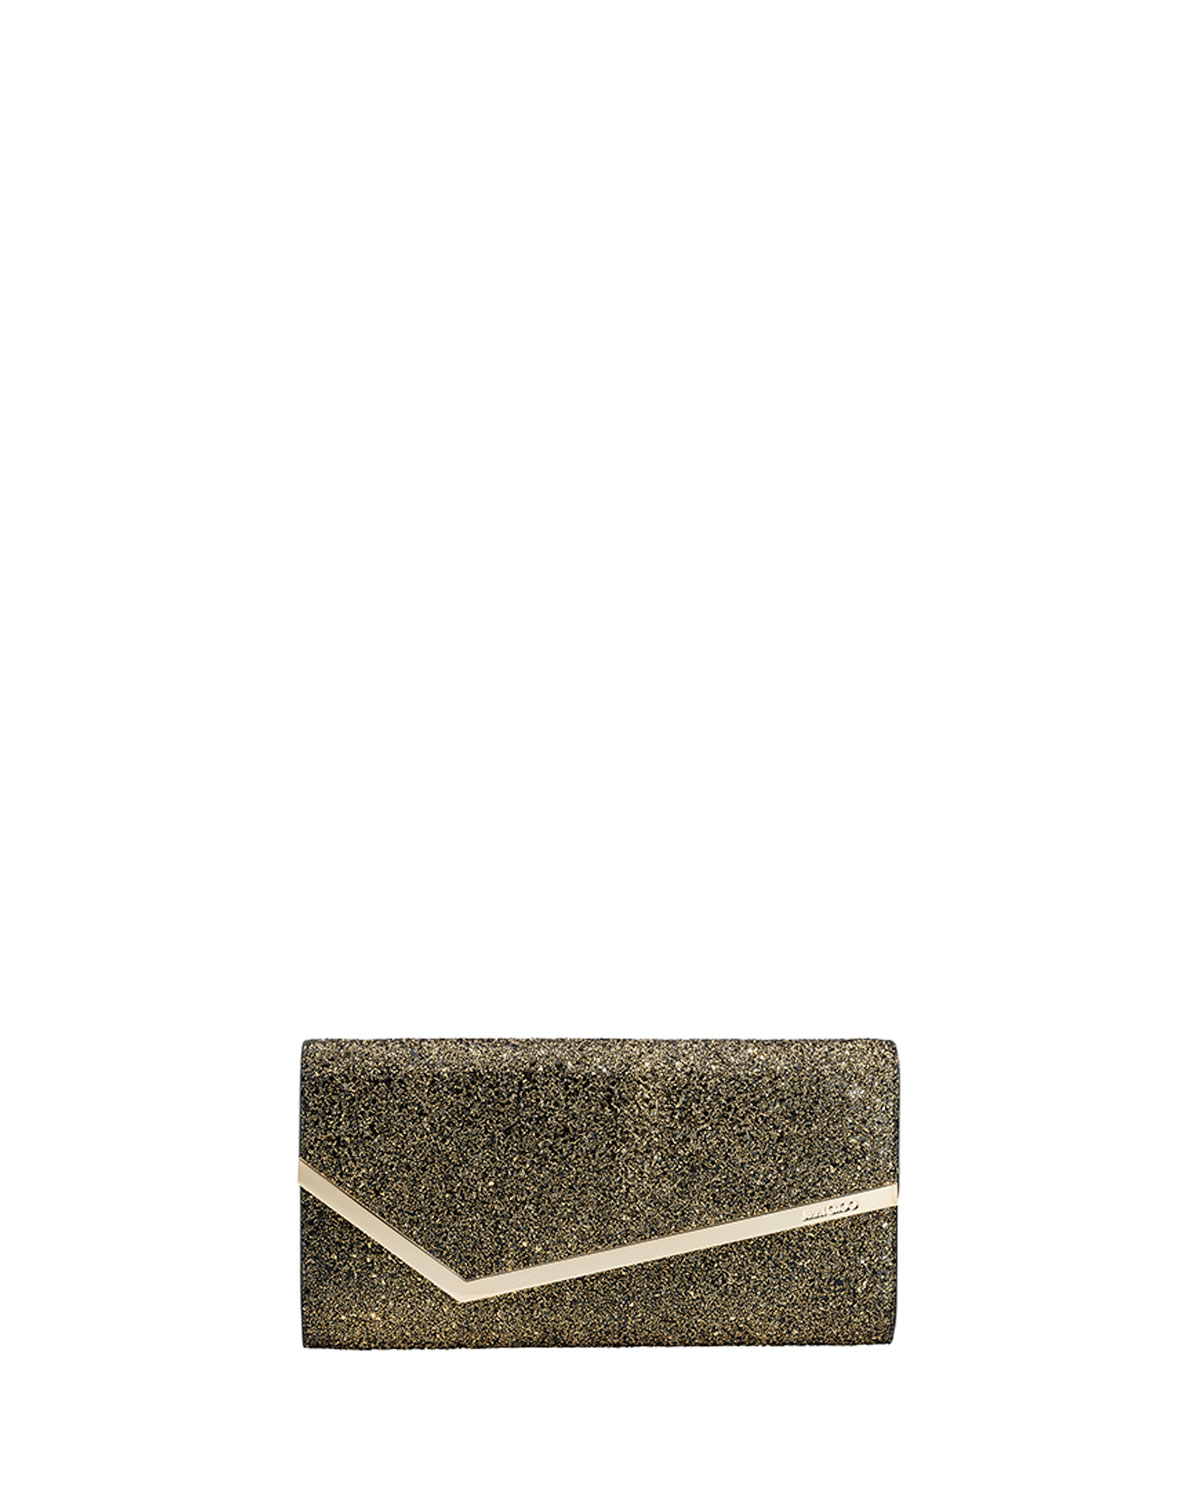 Jimmy Choo Erica Metallic Glitter Clutch Bag